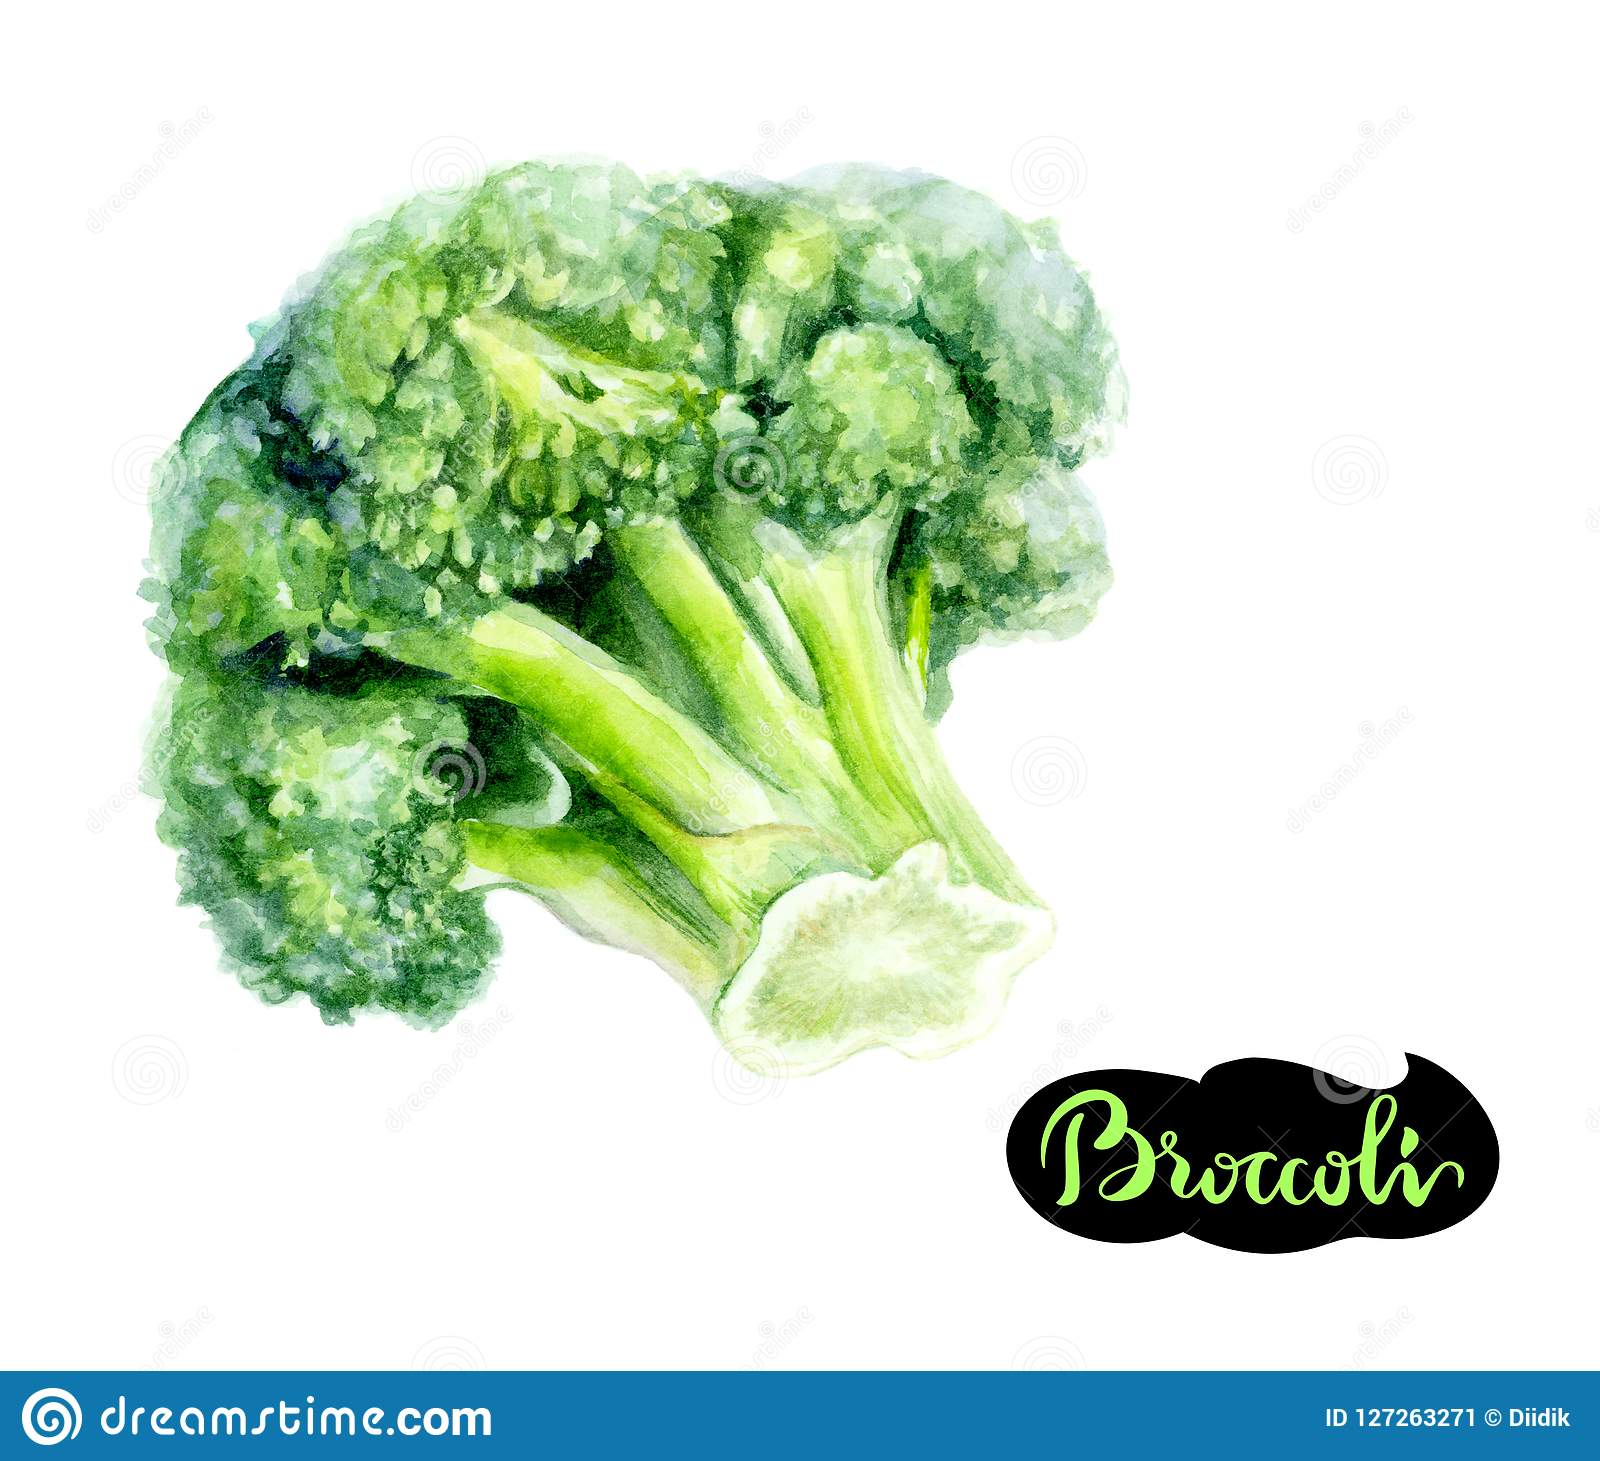 Broccoli watercolor hand drawn illustration isolated on white